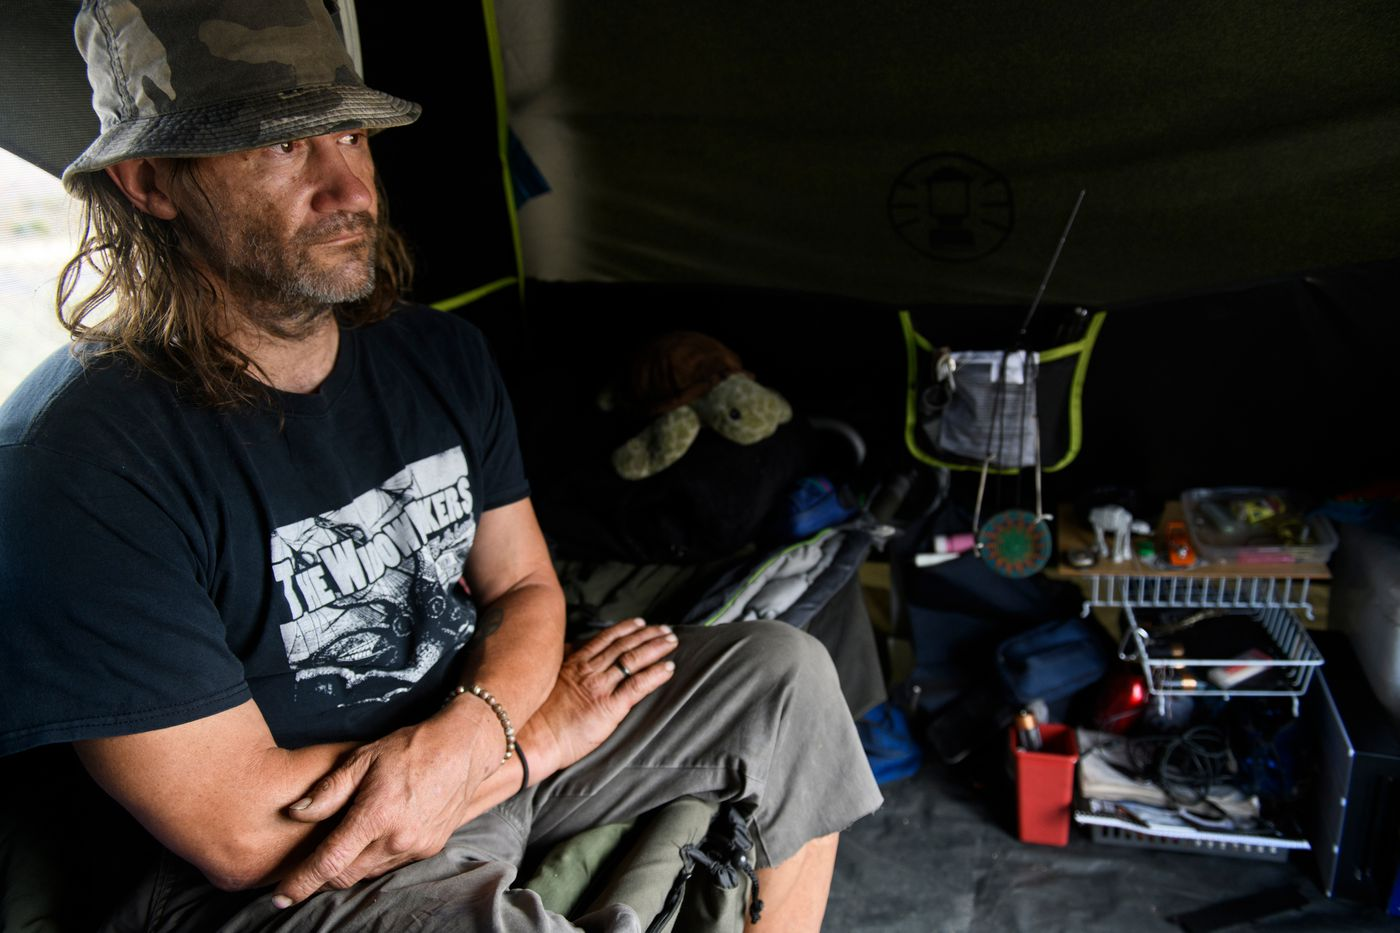 James McKinney stays in a new sanctioned tent camping facility a few blocks from the Nevada CARES Campus on June 24, 2021. 'I'm a very private person, and I just couldn't do it, ' McKinney said of staying at the large facility. (Marc Lester / ADN)